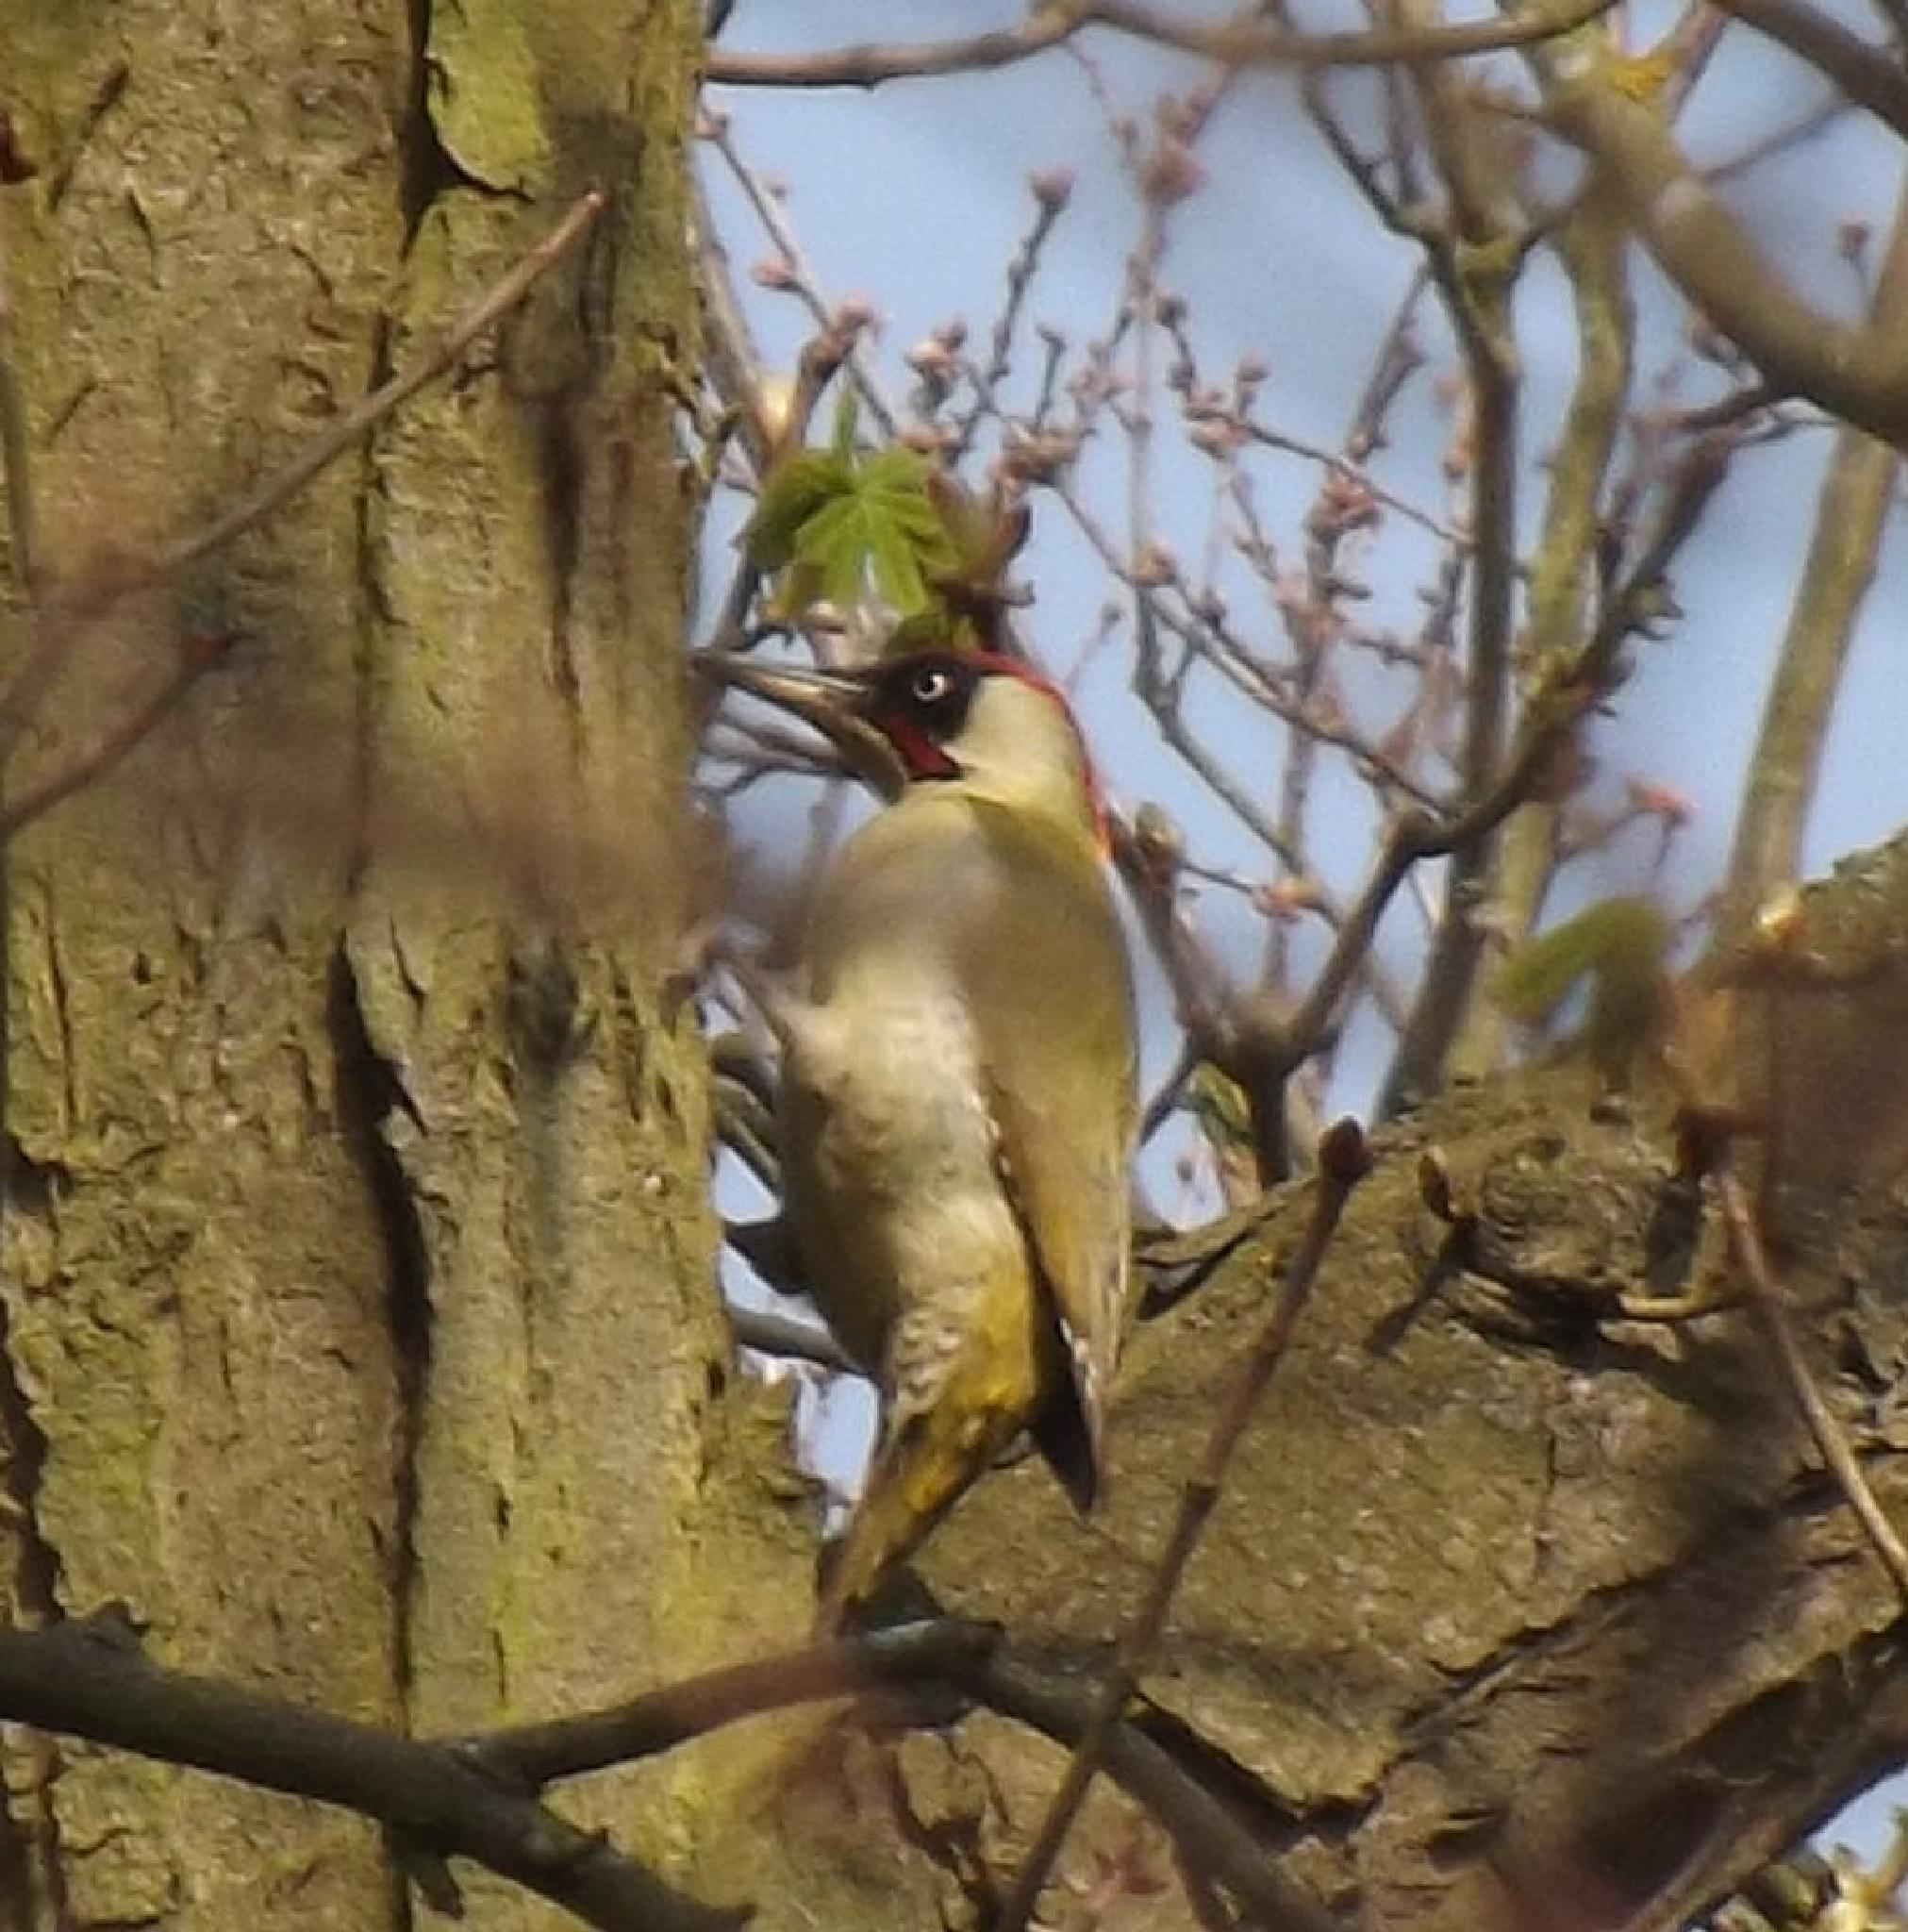 Green Woodpecker by ruth.holland.94